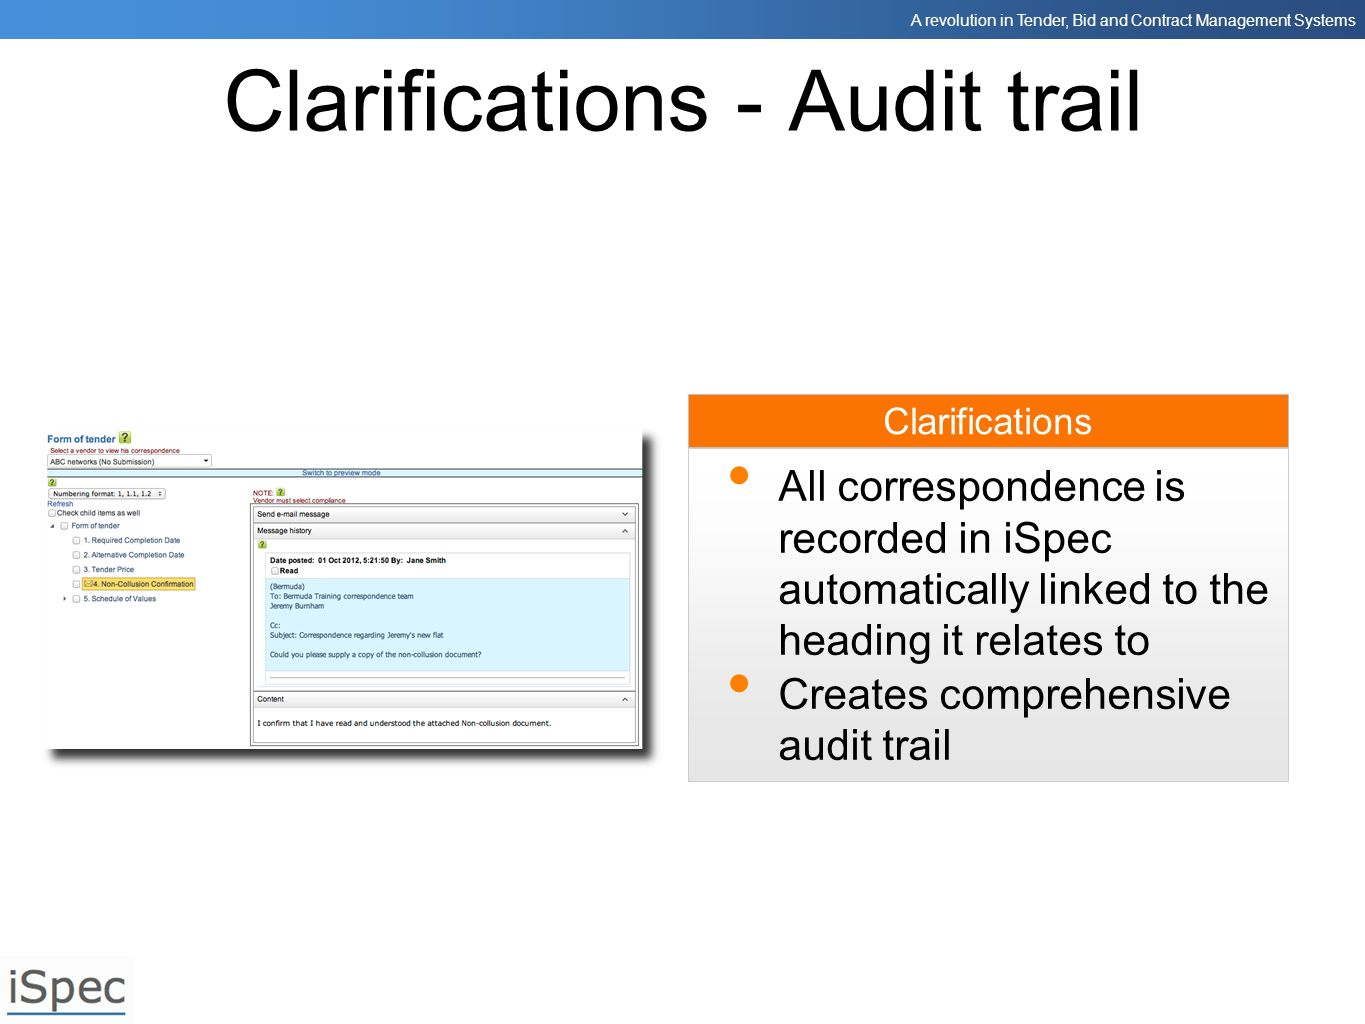 Clarifications - Audit trail